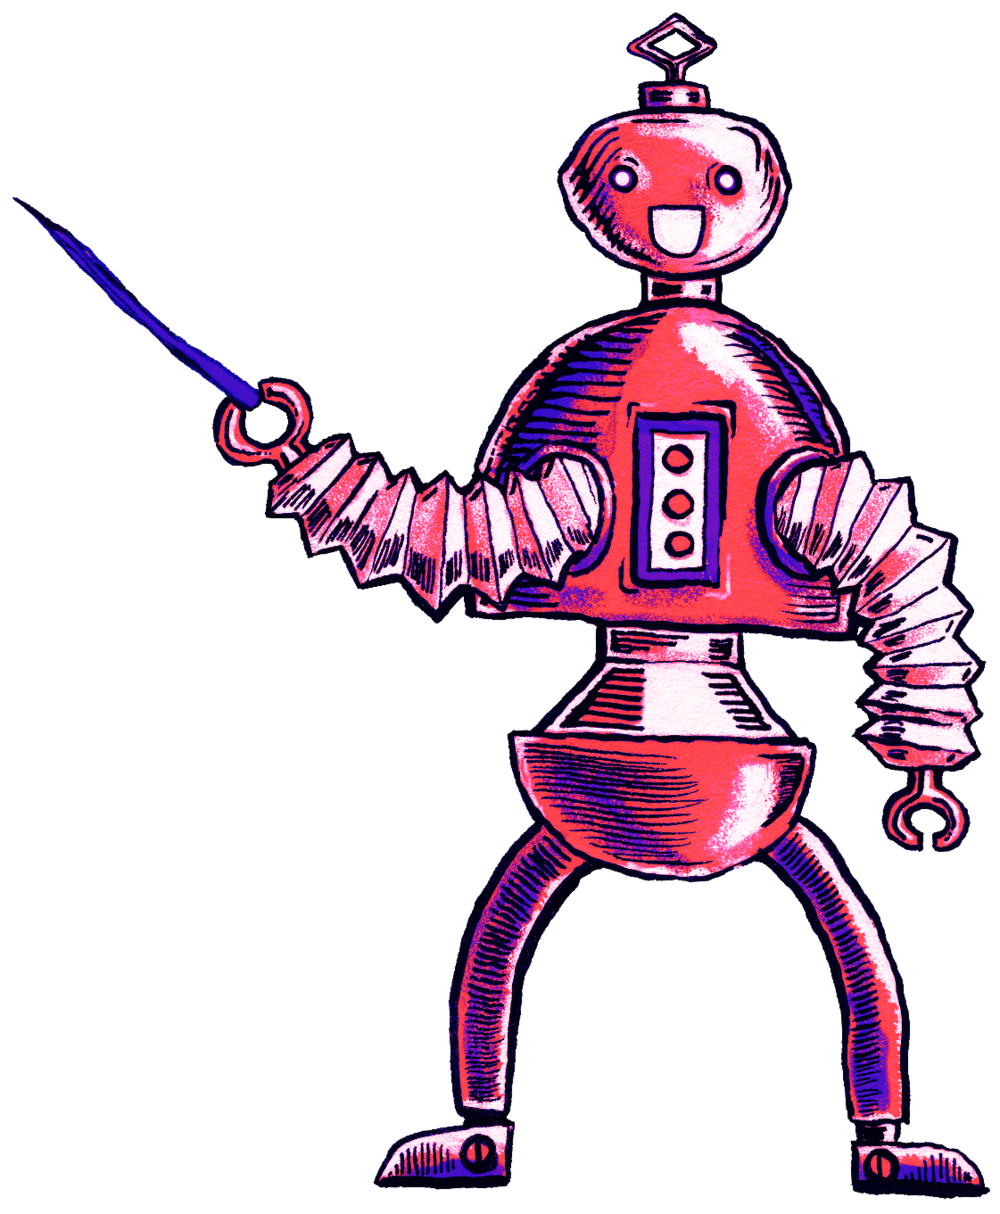 robot_icon_02.png